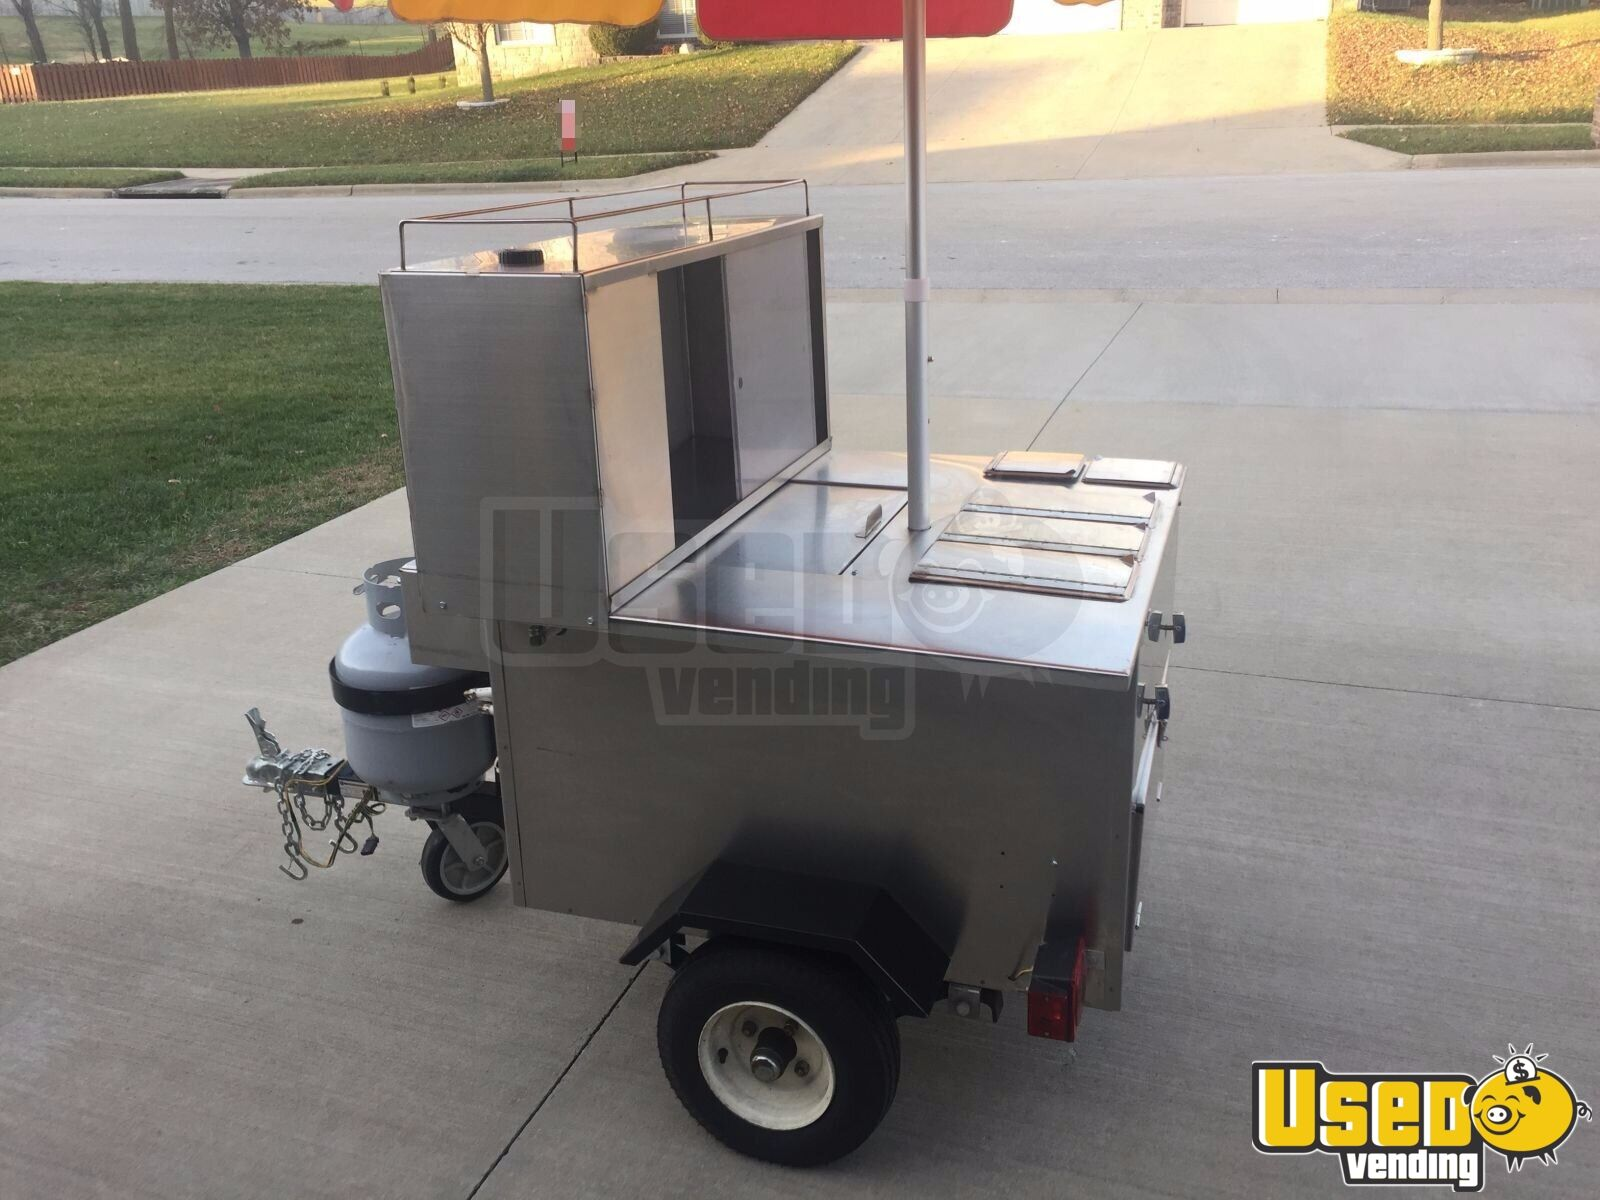 Chicago Style All American Hot Dog Vending Cart for Sale in Missouri!!!